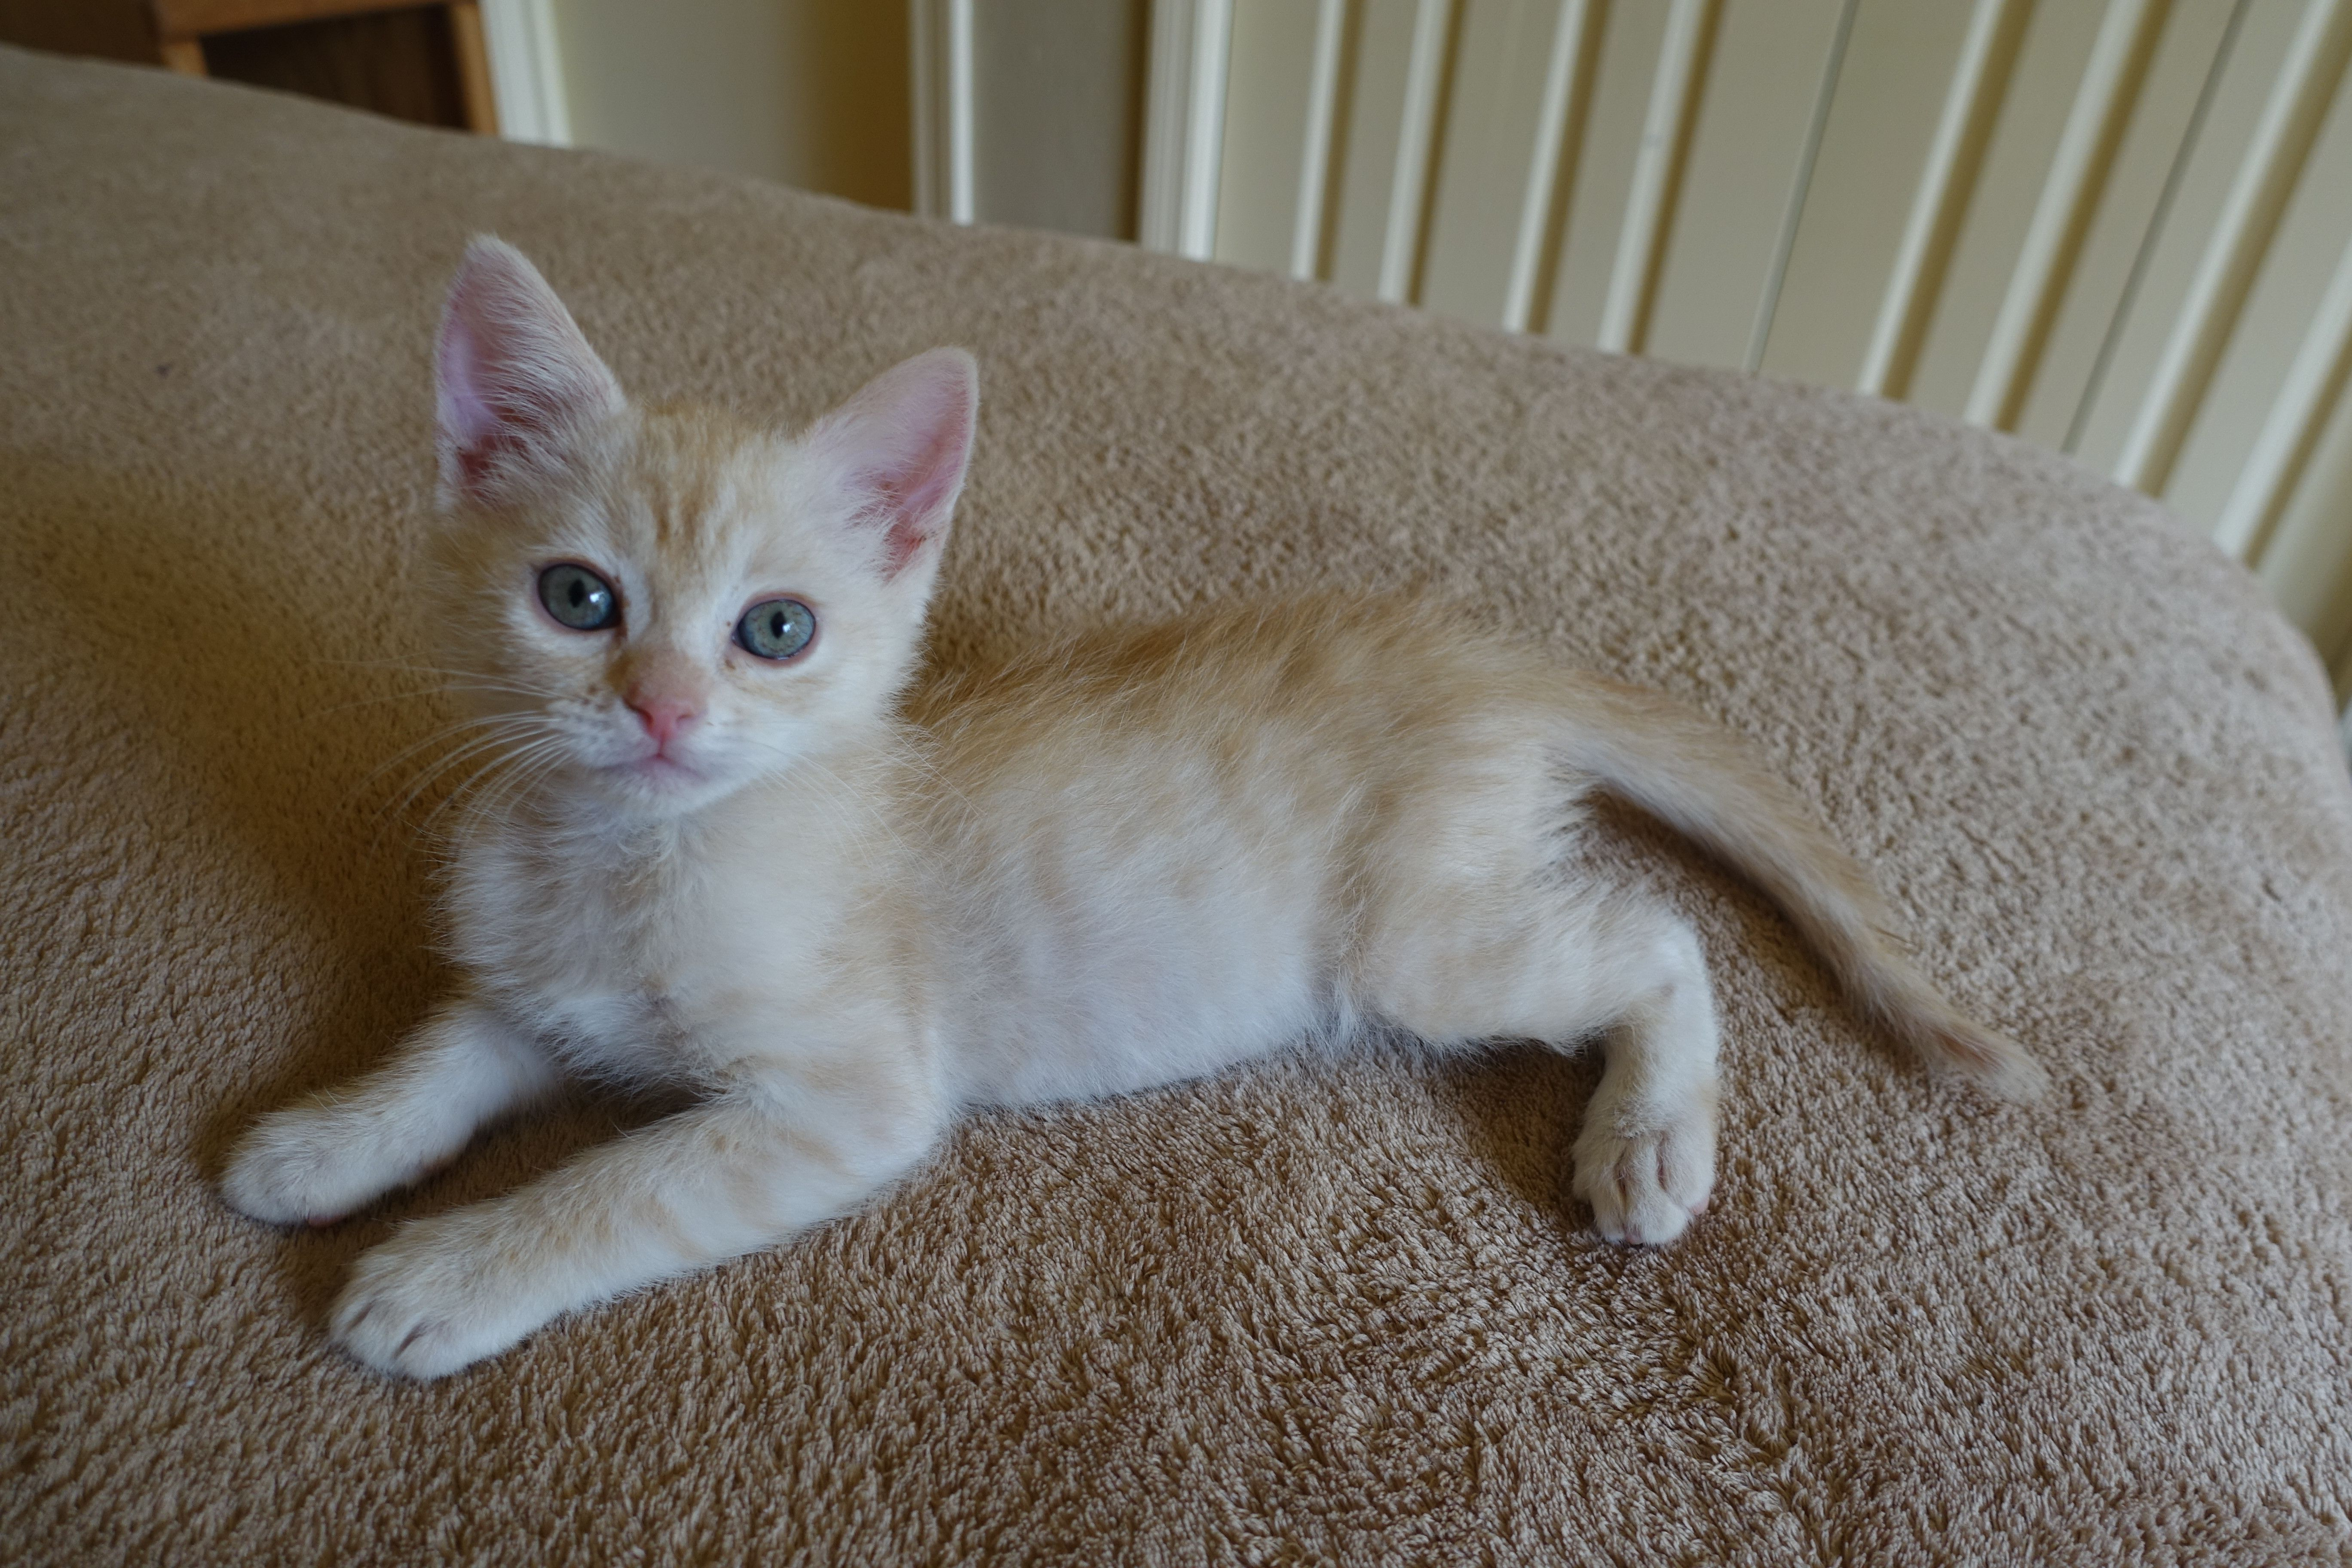 Cookie Is The Biggest Kitten I Ve Ever Fostered Six Weeks Old And Almost Two Pounds Http Ift Tt 2qkklwk Cute Cats And Kittens Pretty Cats Crazy Cats